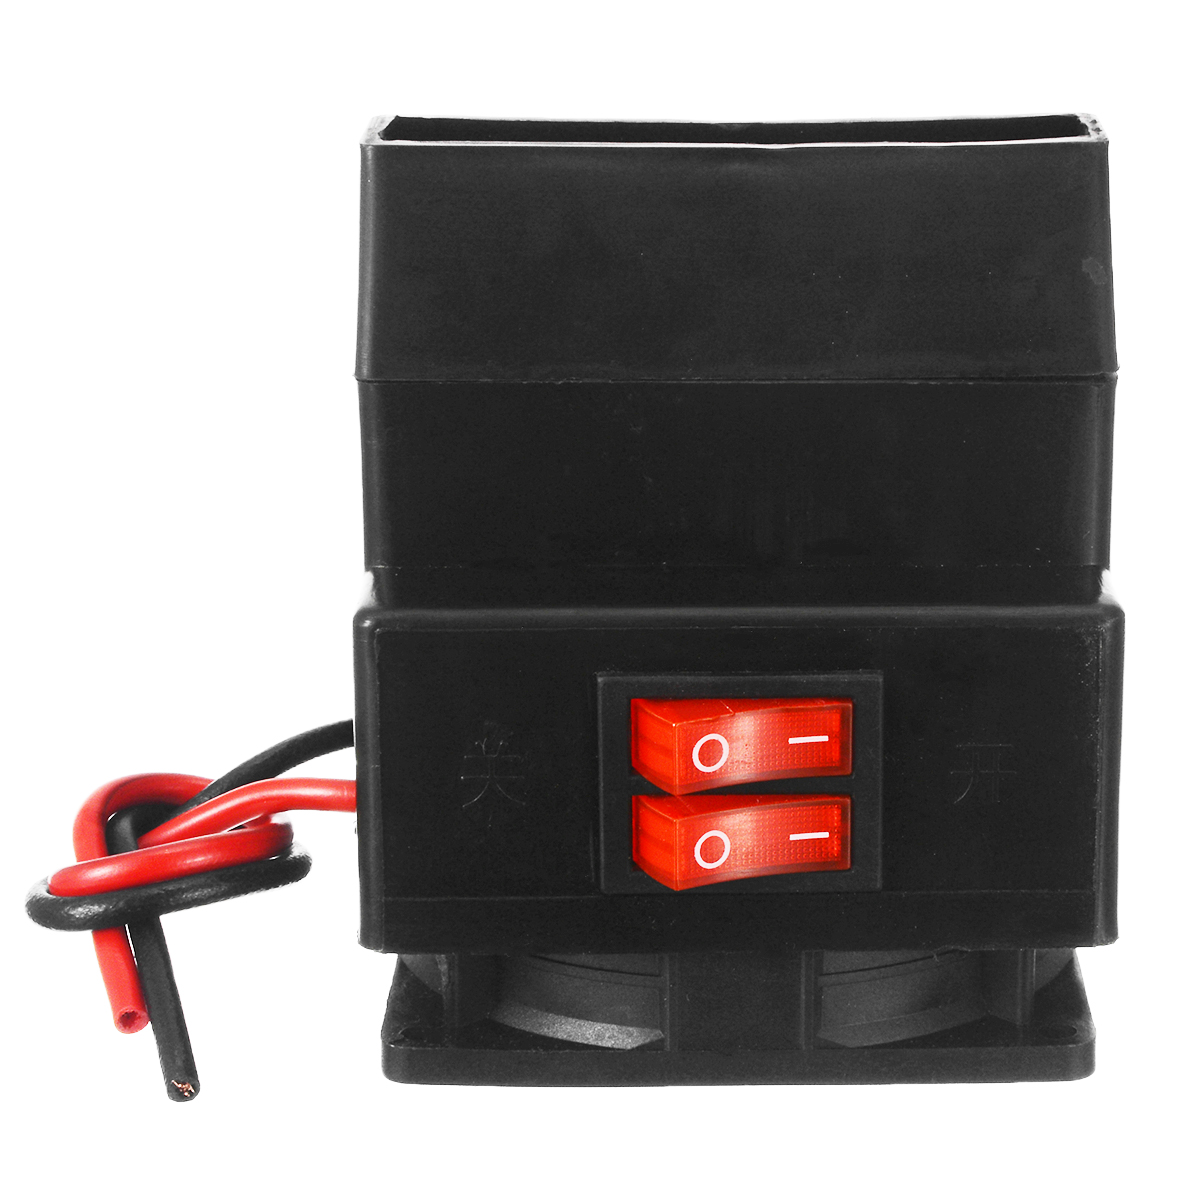 Portable 12V 300W Car Vehicle Auto Electric Heating Heater Hot Fan Defroster Demister Car Accessories 12V 300W